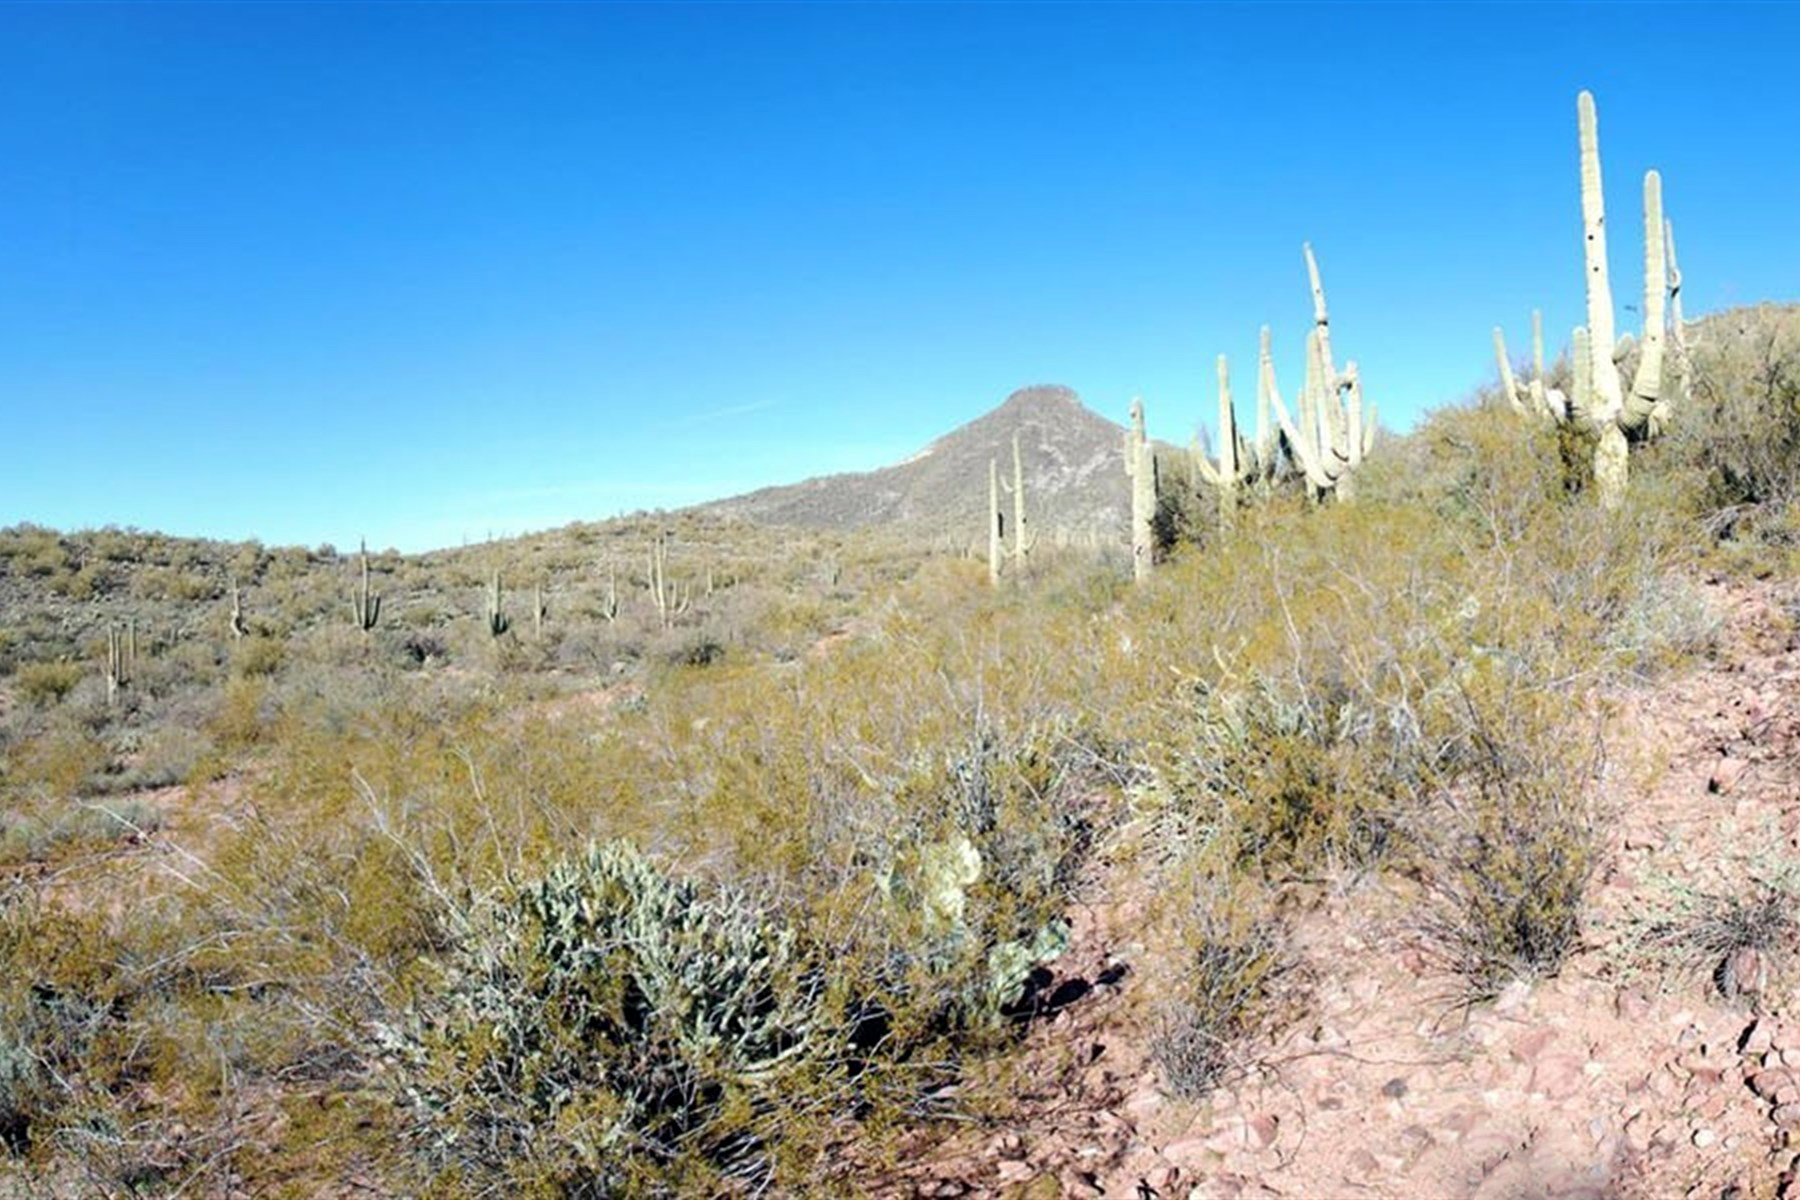 Property For Sale at Development Opportunity; Ranch Zoned for Livestock or Portfolio Investment